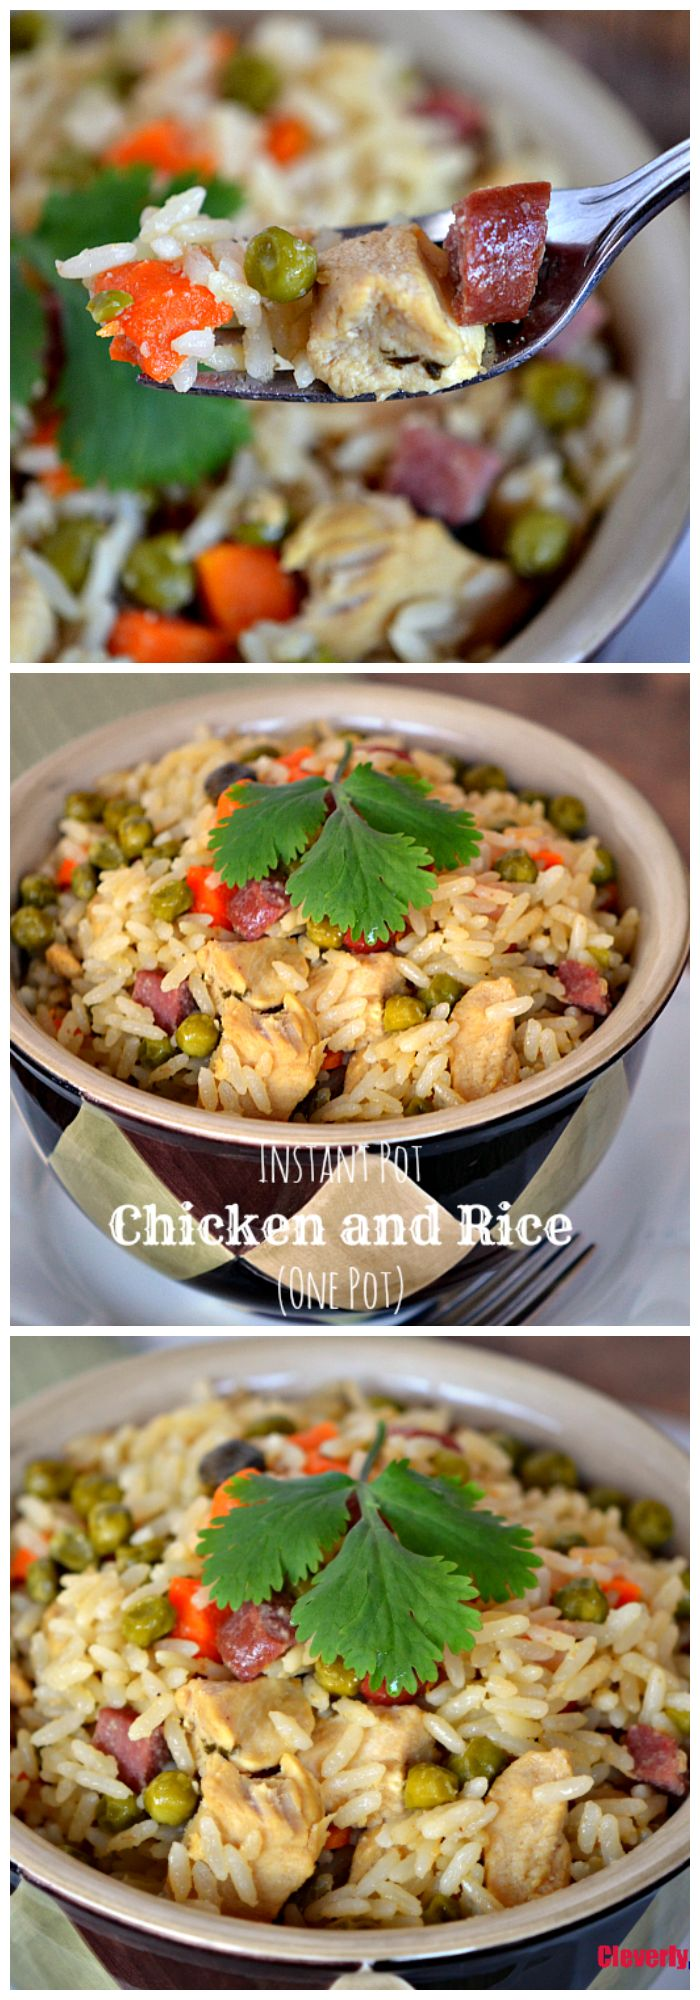 This Instant Pot Chicken and Rice (Arroz Con Pollo) is the perfect one-pot meal! All you need is chicken, hot dogs, rice, vegetables and a pressure cooker and you have the perfect meal anytime of the week. Find the recipe at CleverlyMe.com